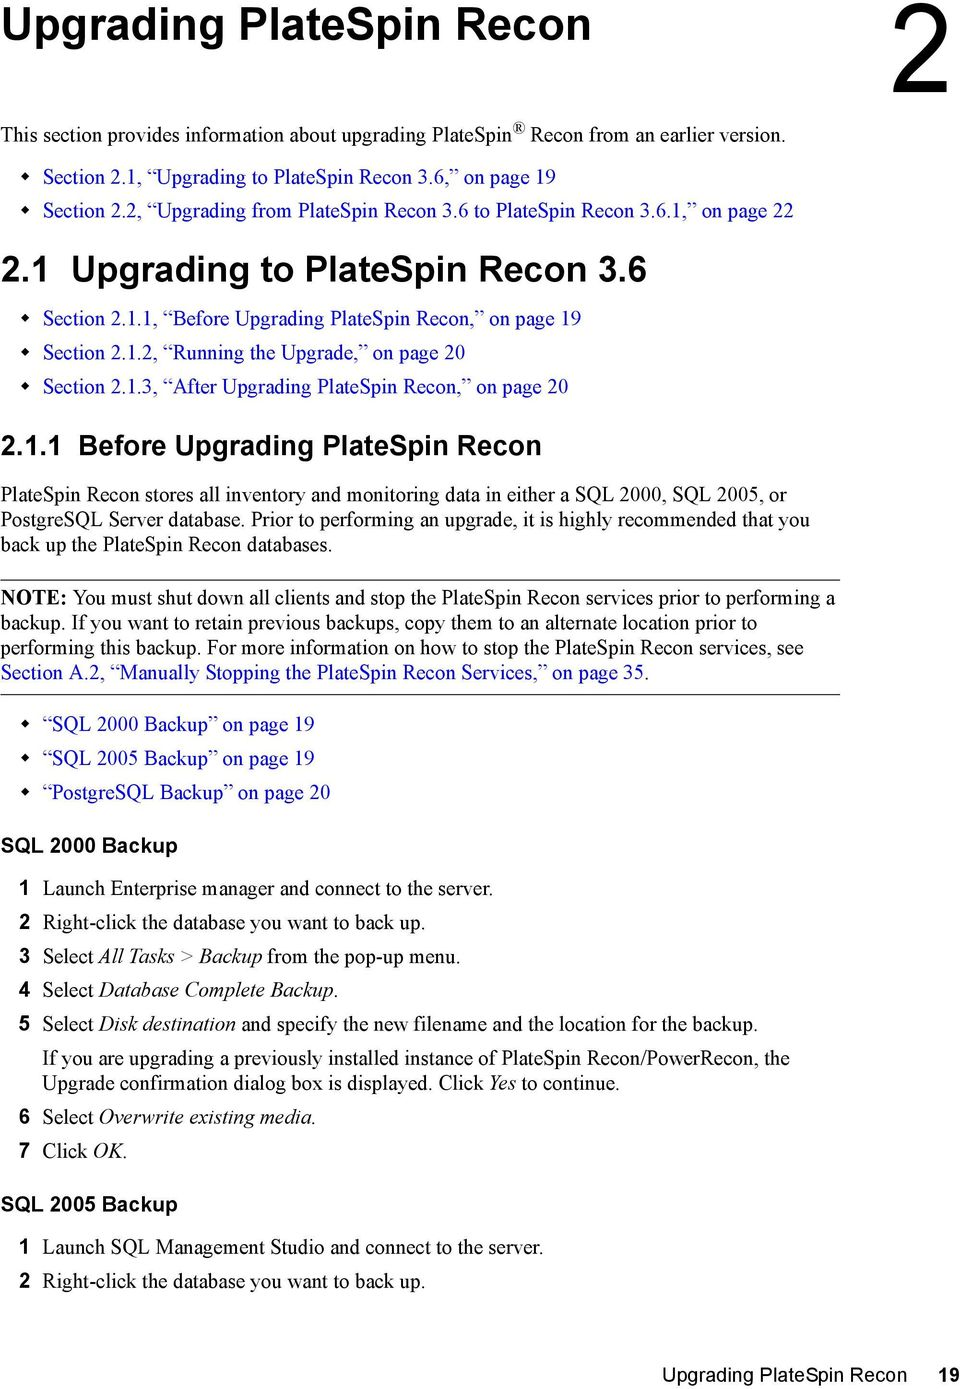 1.3, After Upgrading PlateSpin Recon, on page 20 2.1.1 Before Upgrading PlateSpin Recon PlateSpin Recon stores all inventory and monitoring data in either a SQL 2000, SQL 2005, or PostgreSQL Server database.